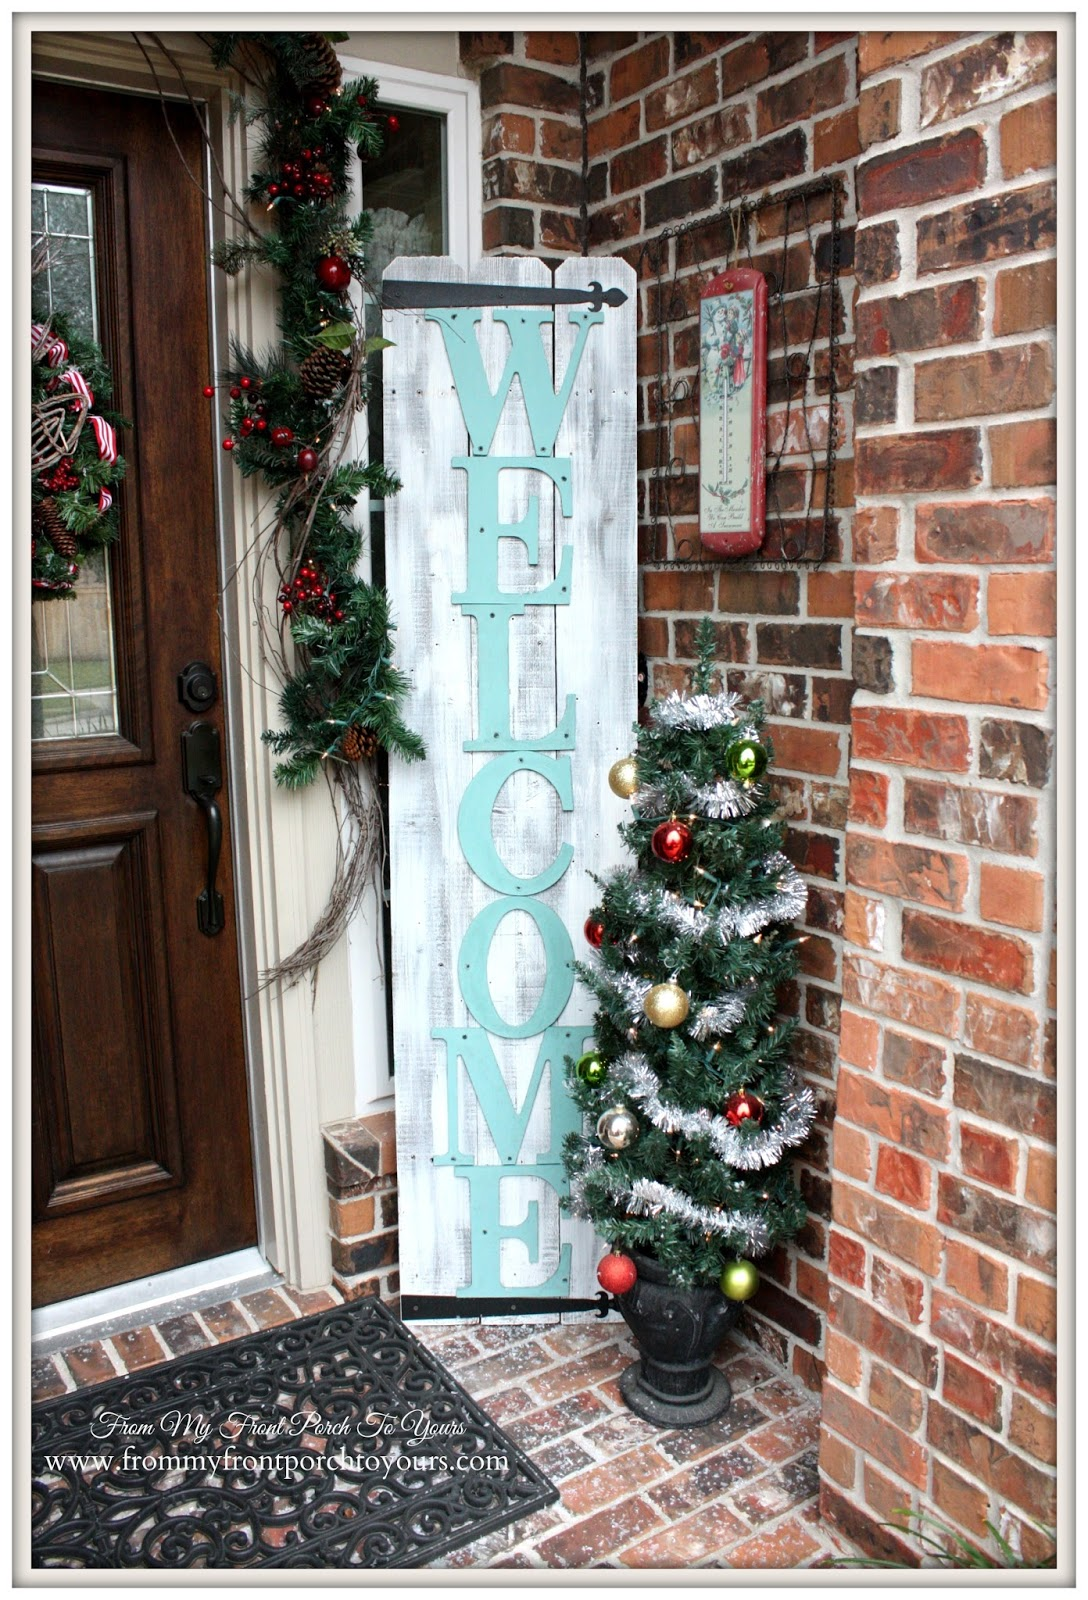 Large Welcome Sign-Simple Vintage Christmas Front Porch- From My Front Porch To Yours